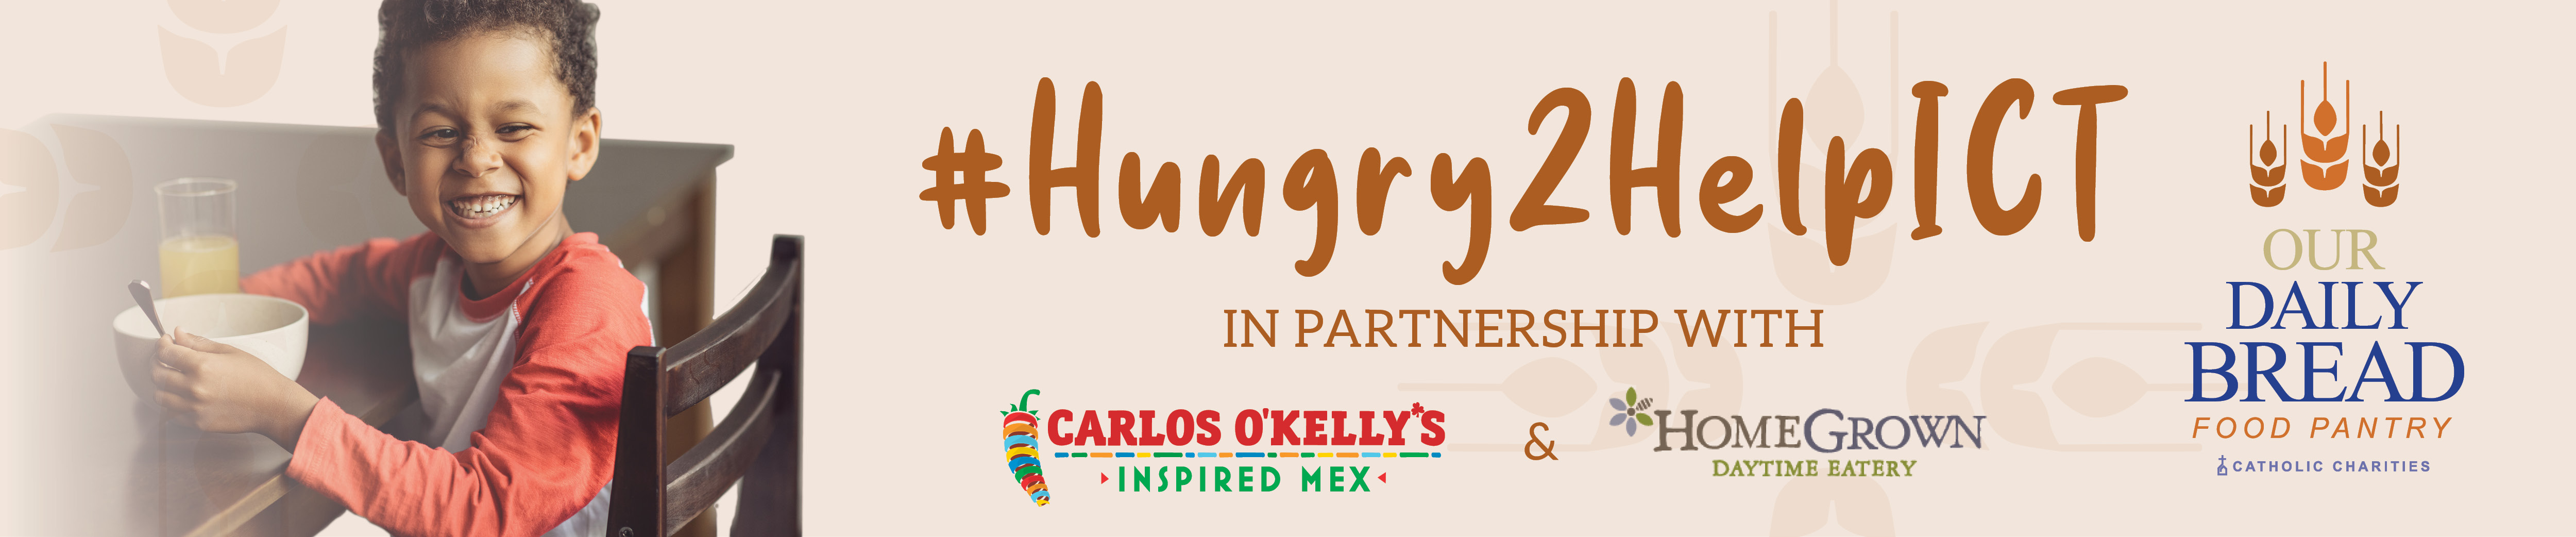 #Hungry2HelpICT in conjunction with #GivingTuesdayNow supporting Our Daily Bread Food Pantry